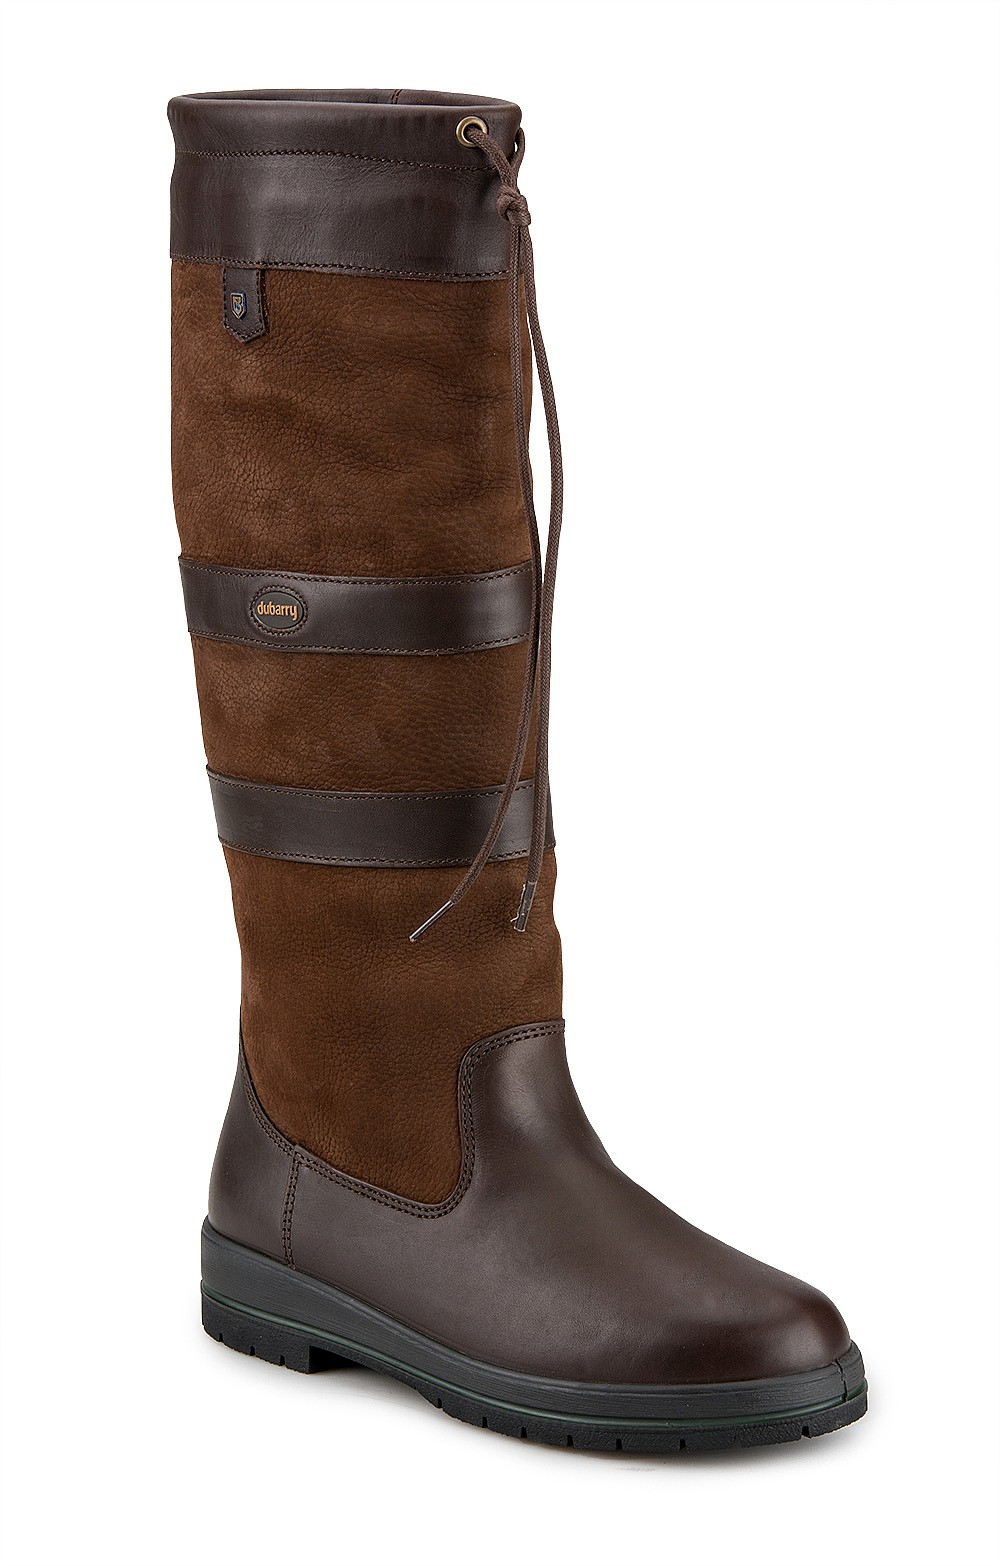 41122d6de25 Dubarry Galway Slimfit Boot | Ladies Wellingtons & Country Boots | House Of  Bruar